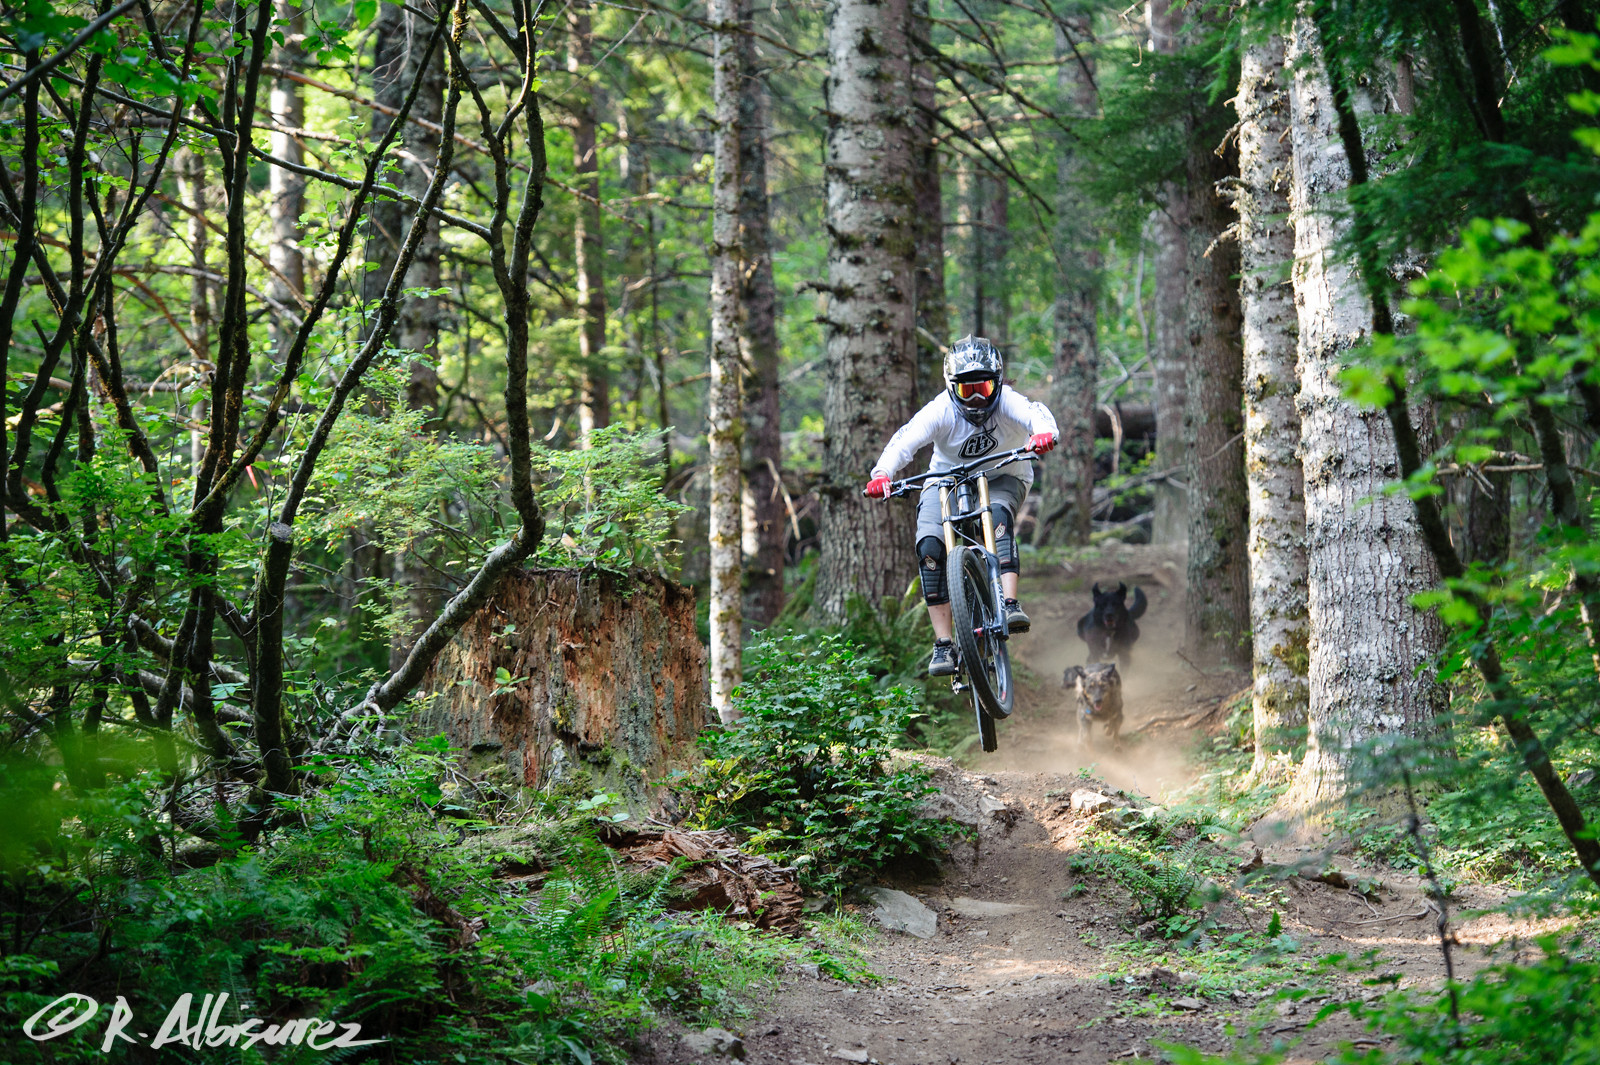 Shred Puppy Heaven - rooshmoo - Mountain Biking Pictures - Vital MTB